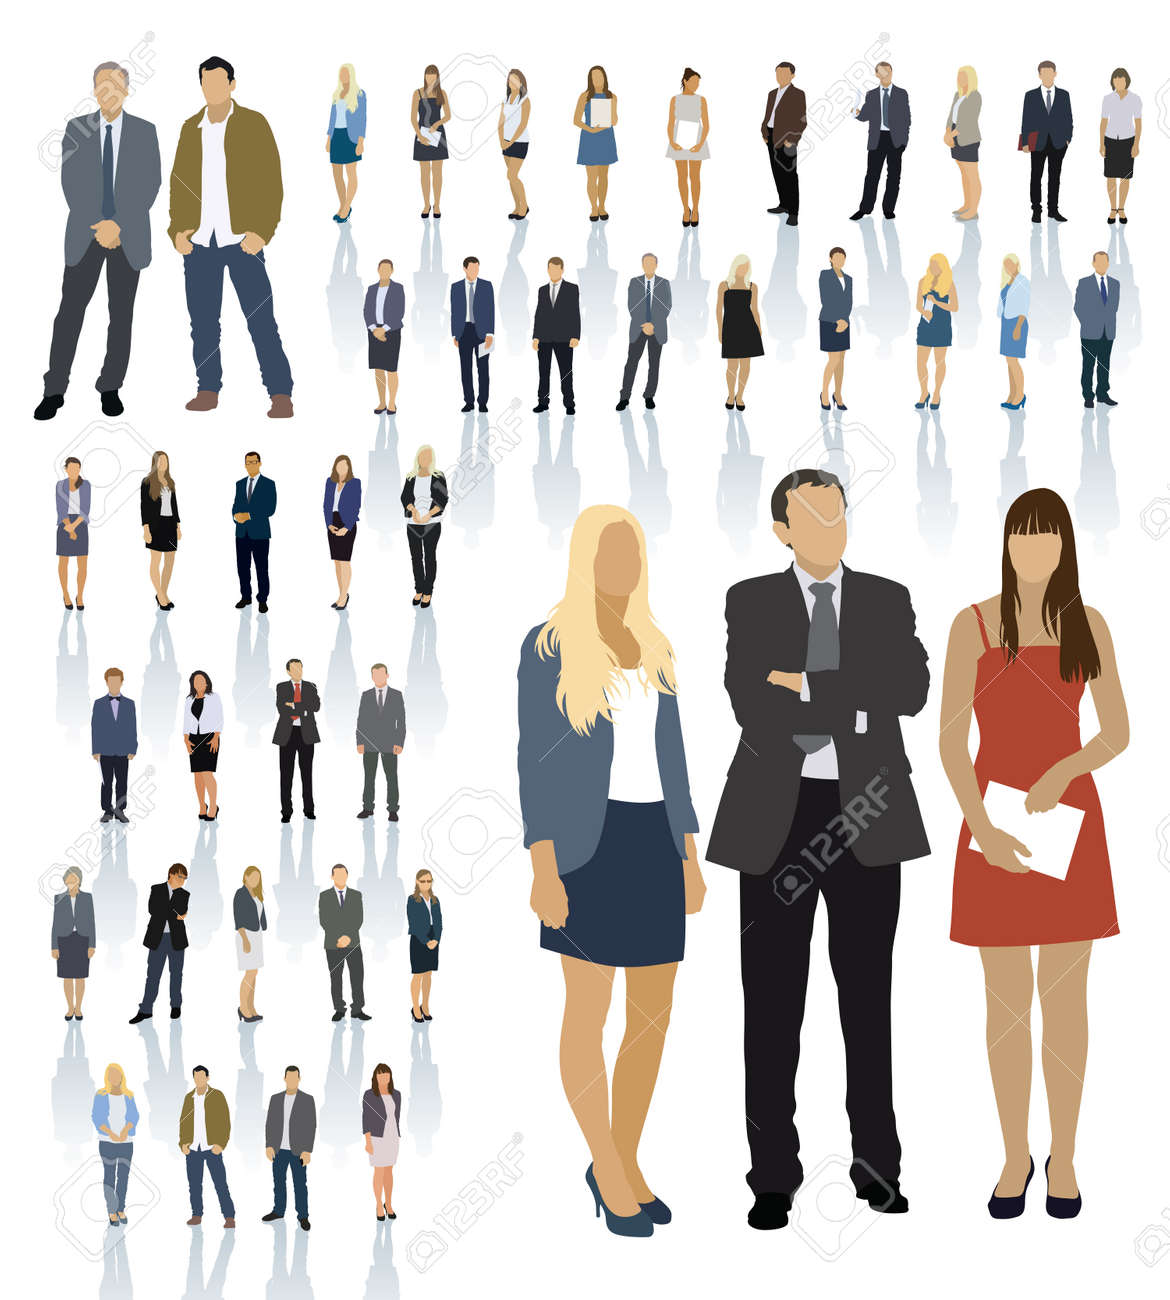 Large colorful set of people silhouettes. Businesspeople; men and women. Standard-Bild - 34657661